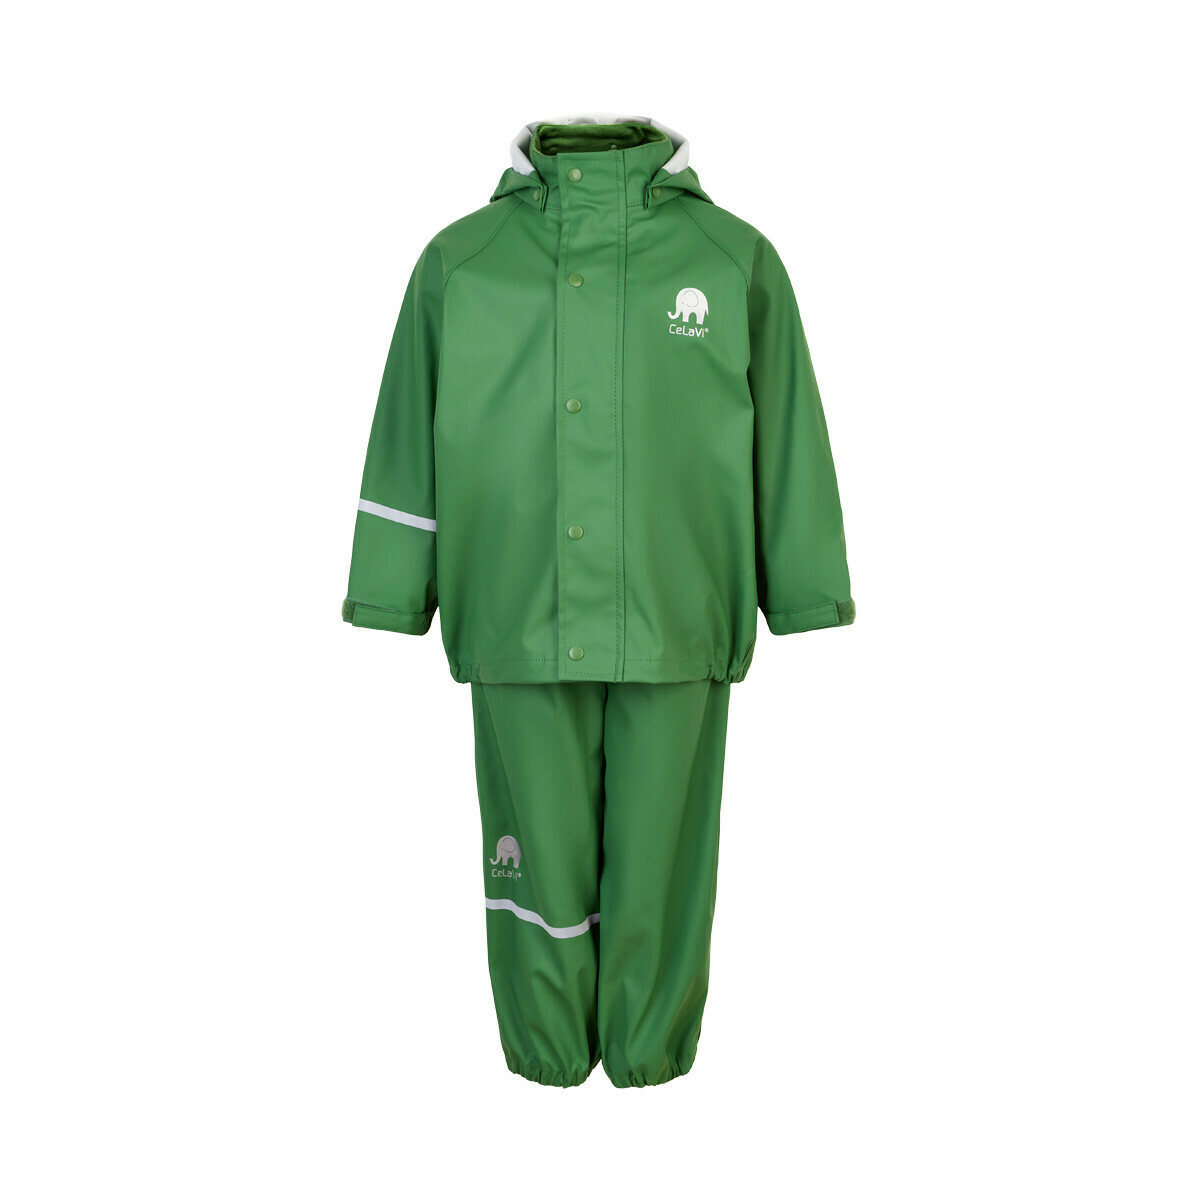 CELAVI RAIN SET, Elm Green